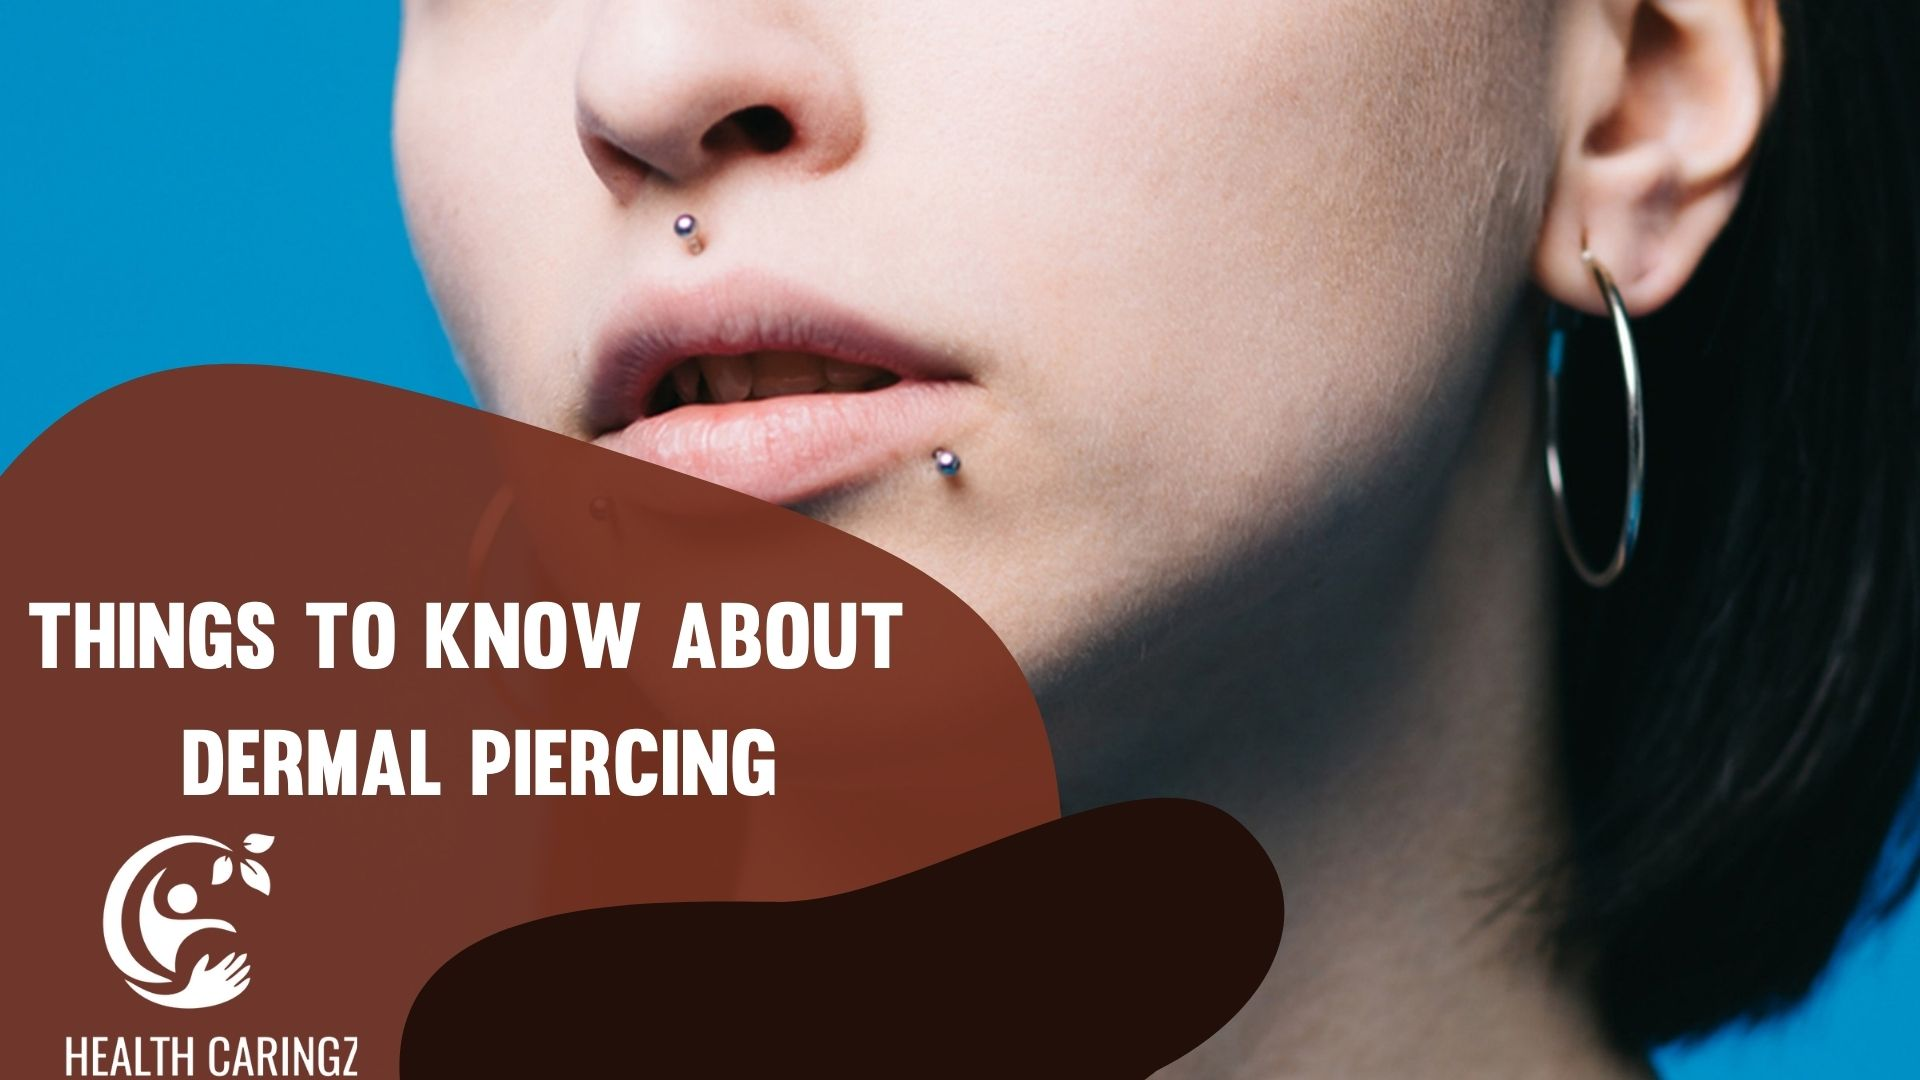 Things To Know About Dermal